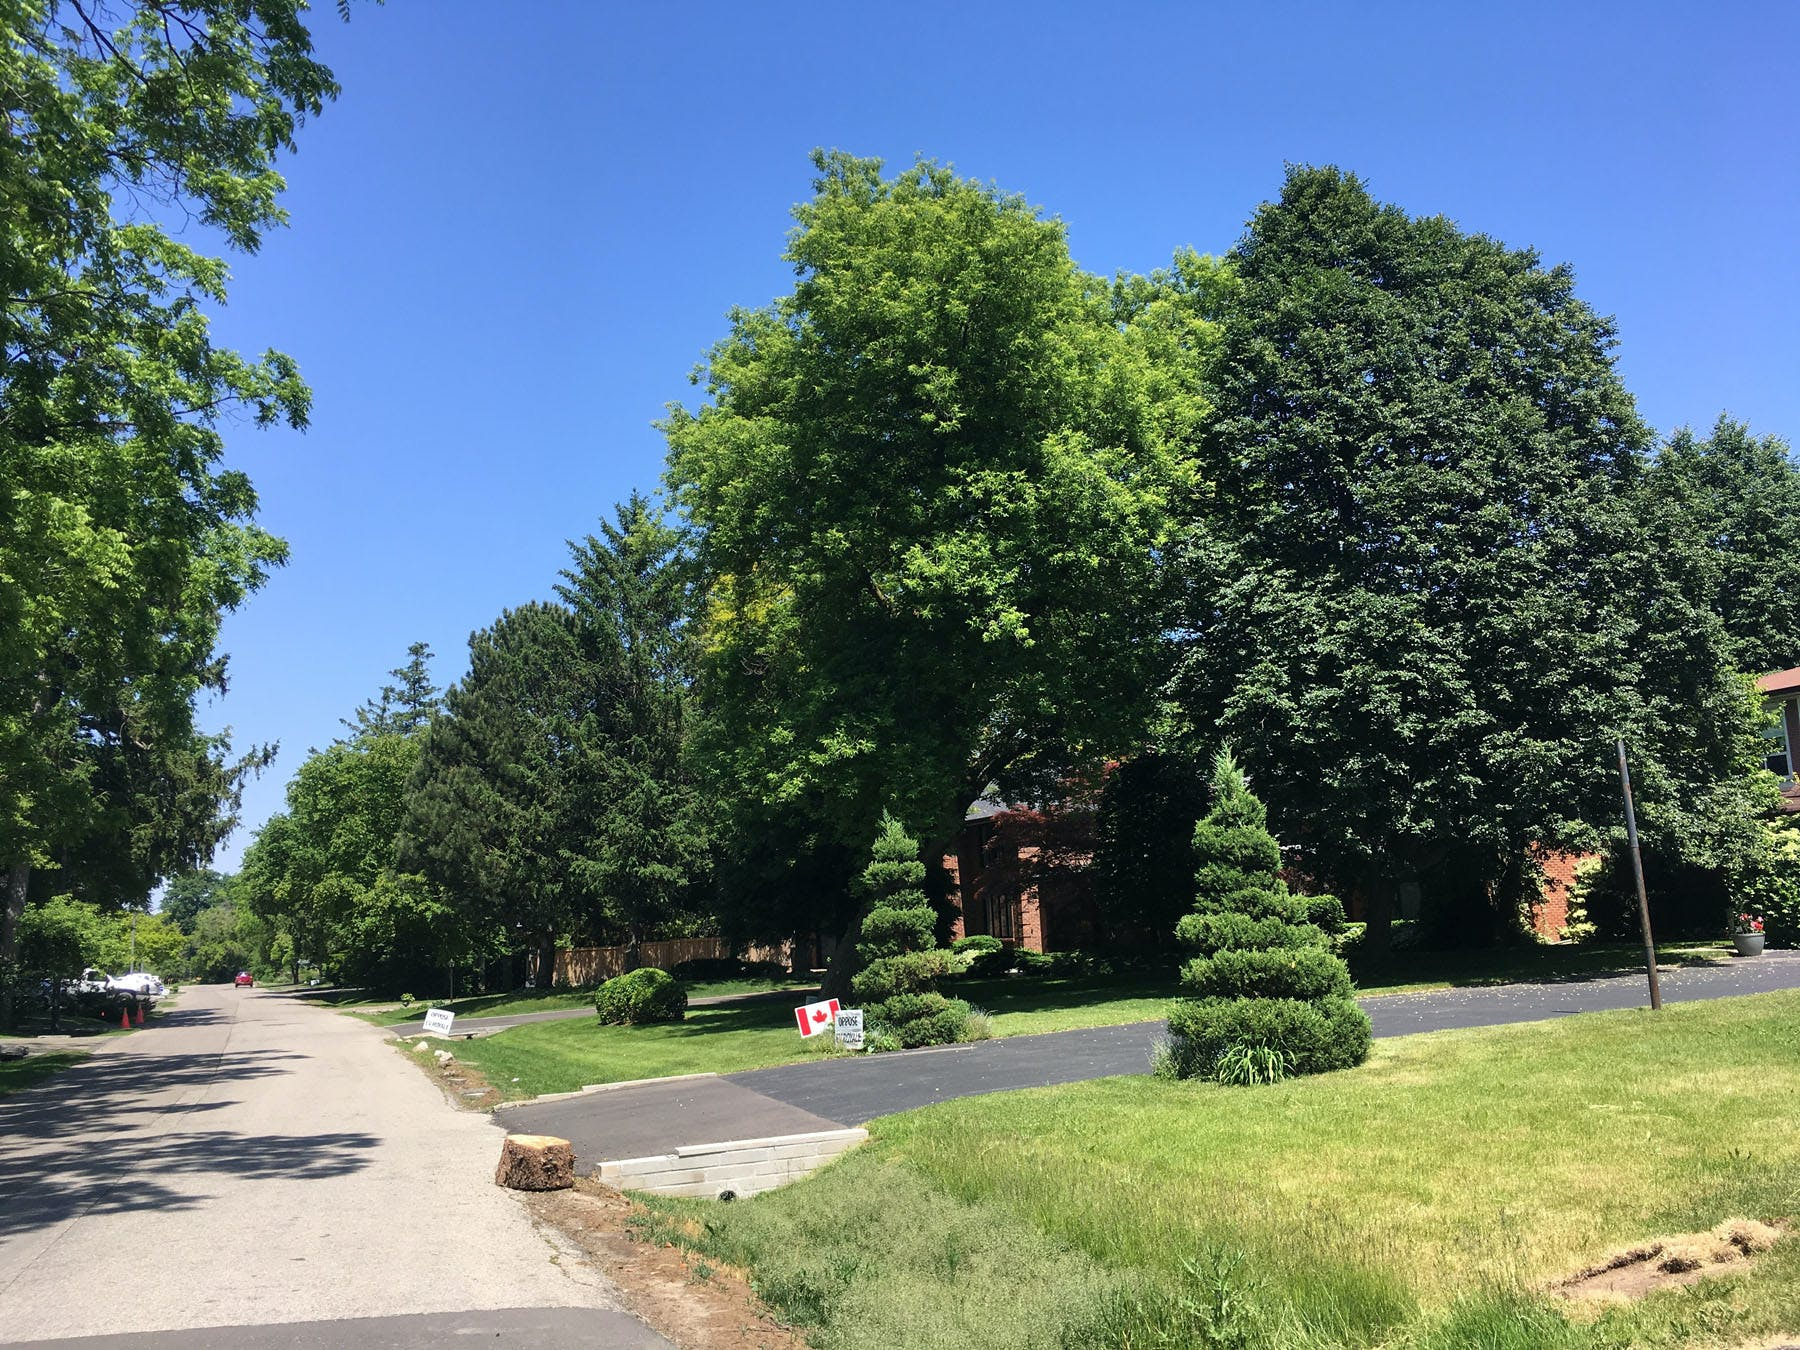 Rural streetscape and mature trees of Erindale Village